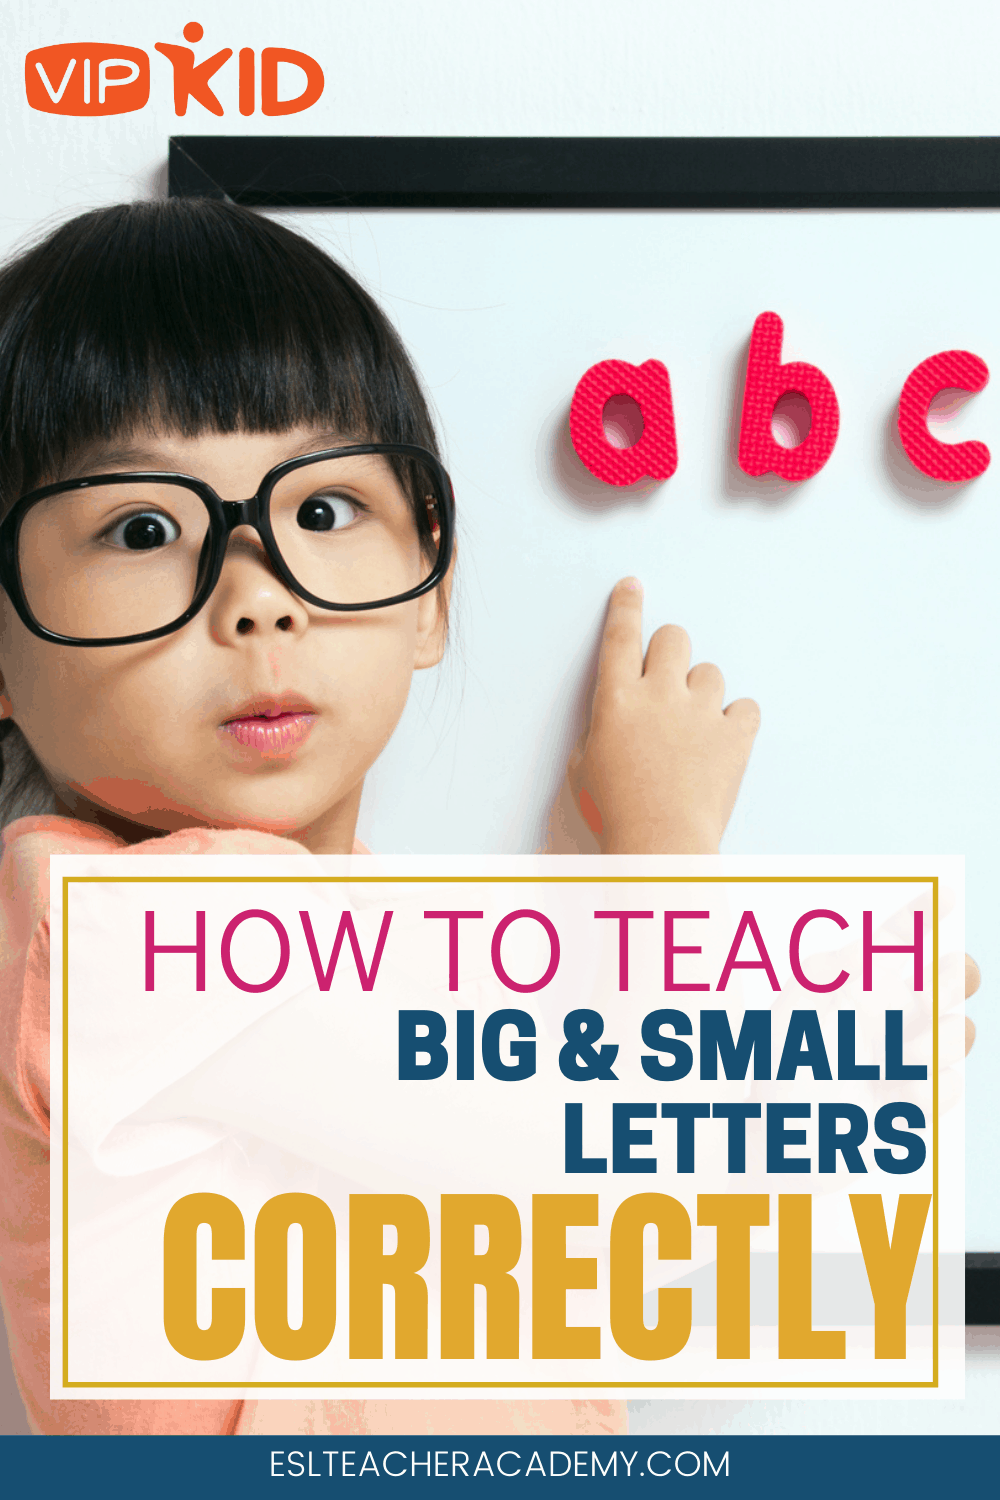 Knowing how to teach big and small letters is critical when you teach PreVIP (Level 1) and Level 2 students in your VIPKid classroom. Find tips and ideas for including TPR, flashcards, and props to showcase upper and lowercase letters in your interview, mock classes, and daily lessons. Also increase your 5 apple feedback with these! My favorite is number 2. #vipkidteaching #vipkid